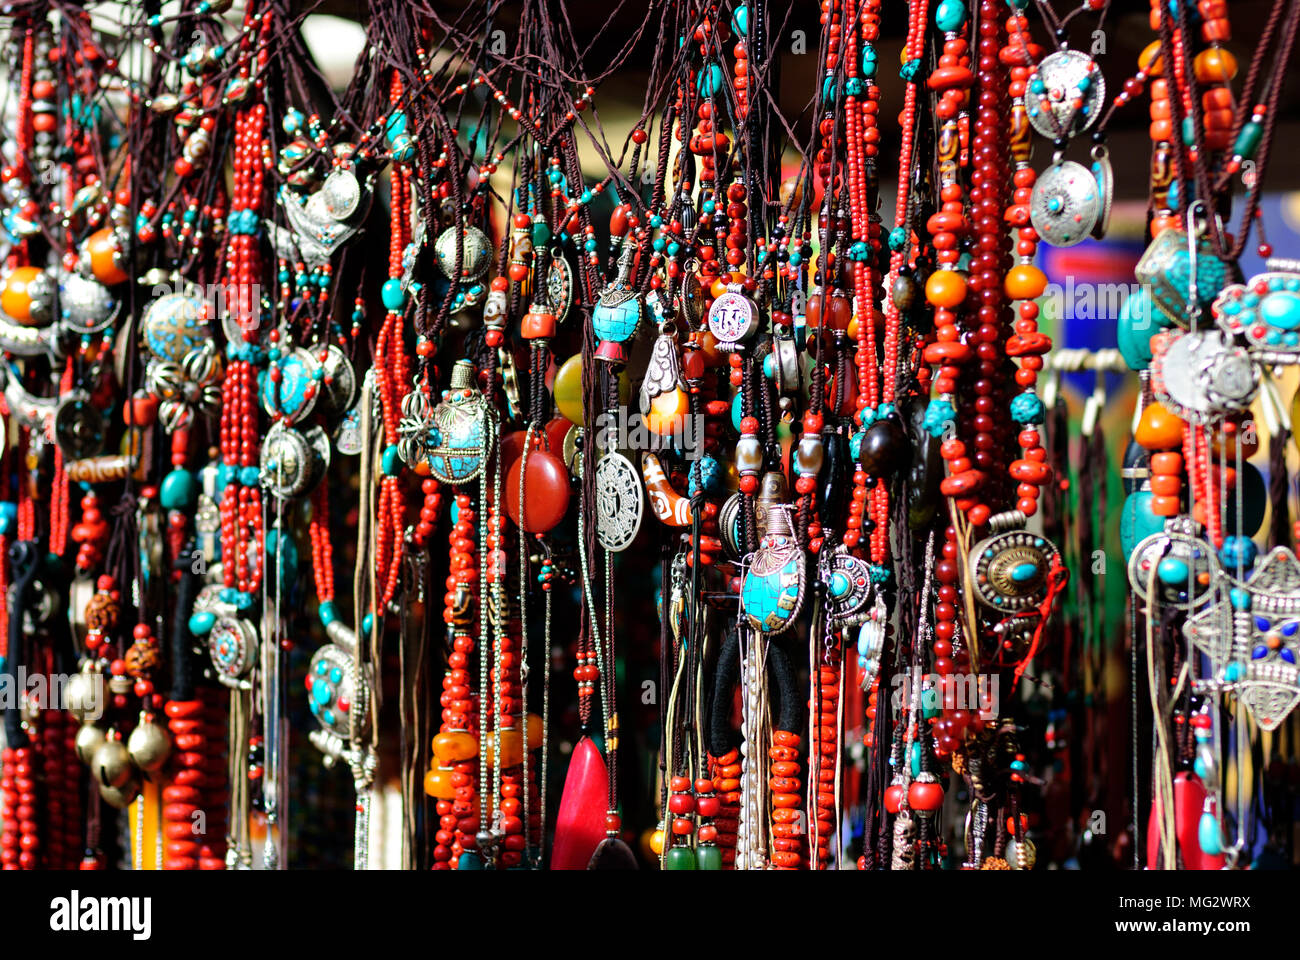 Traditional decoration necklaces in Tibet market place background - Stock Image